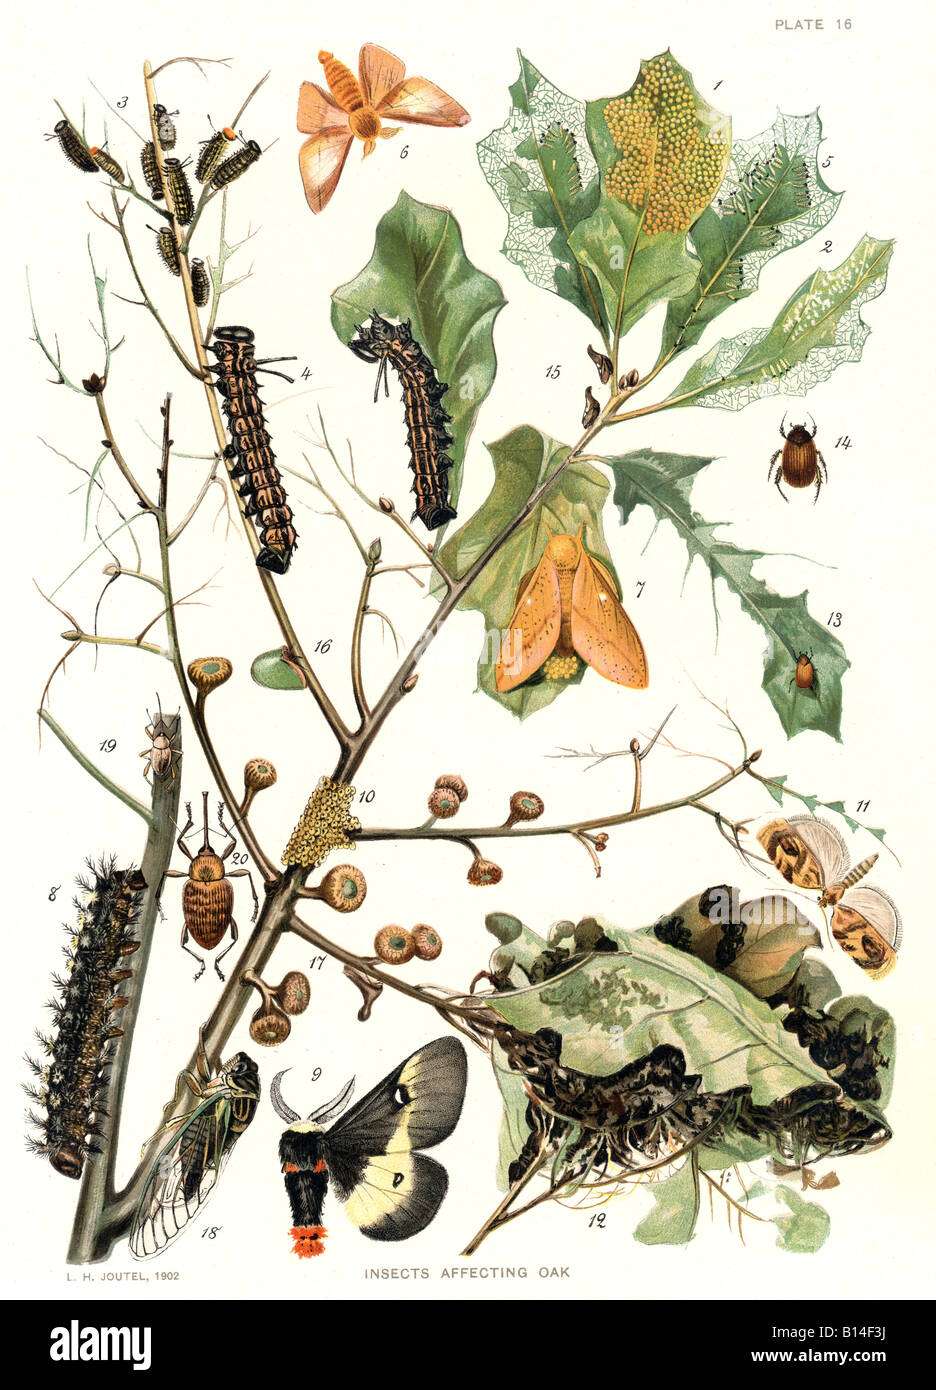 antique illustration showing insects affecting oak - Stock Image